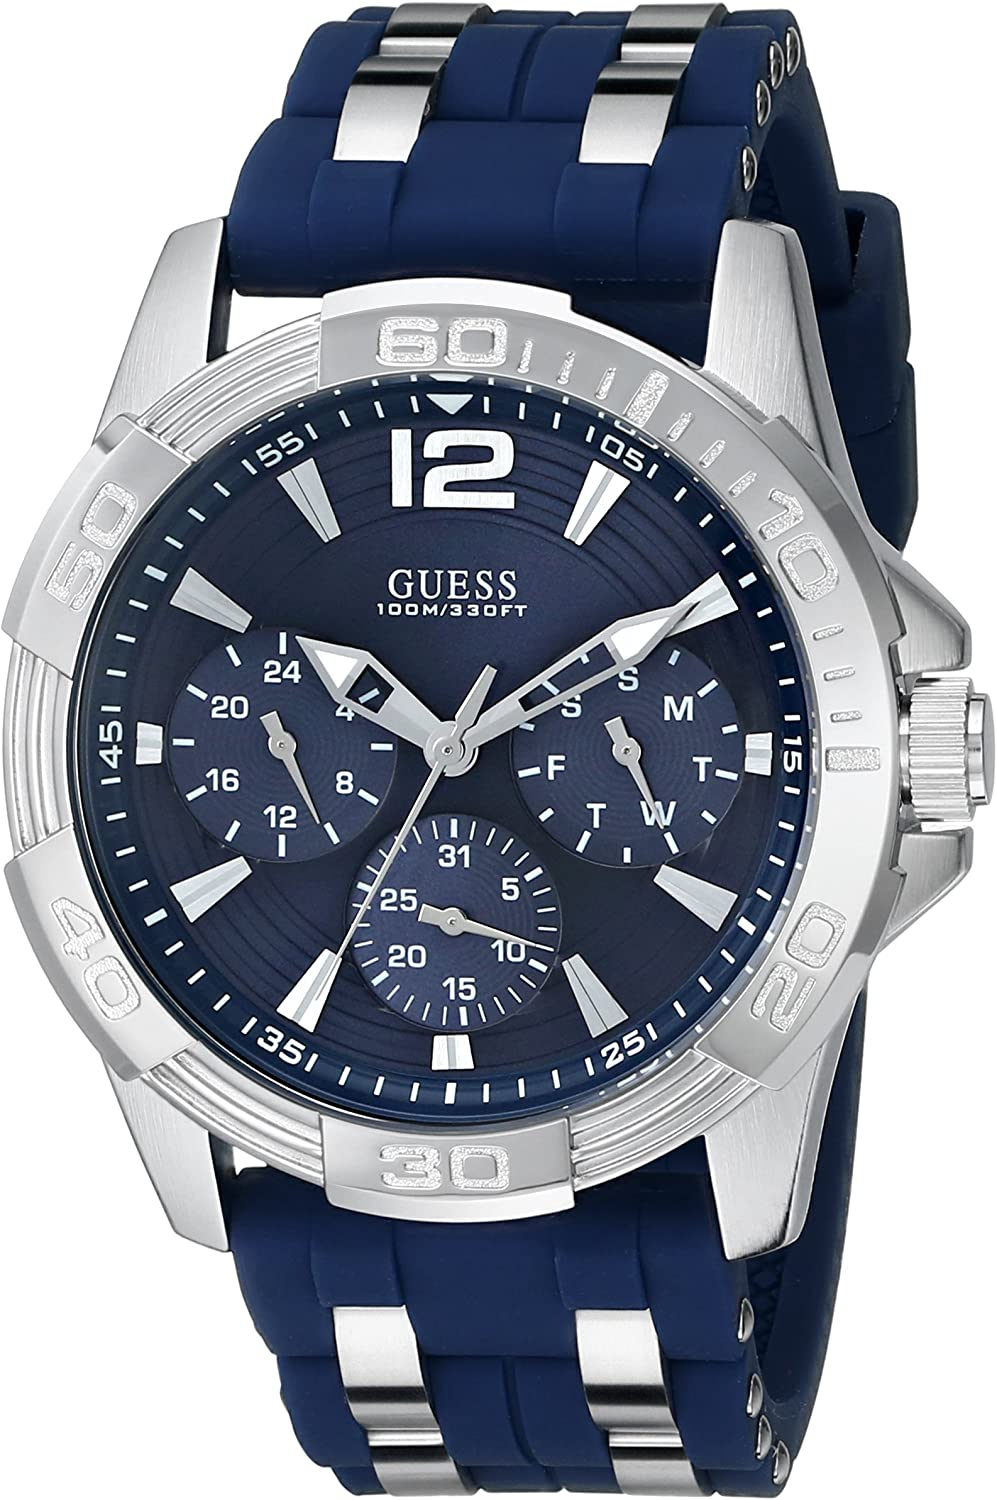 dividendo Dedicare zucchero  Amazon.com: GUESS Iconic Blue Stainless Steel Stain Resistant Silicone  Watch with Day, Date + 24 Hour Military/Int'l Time. Color: Blue (Model:  U0366G2): Watches